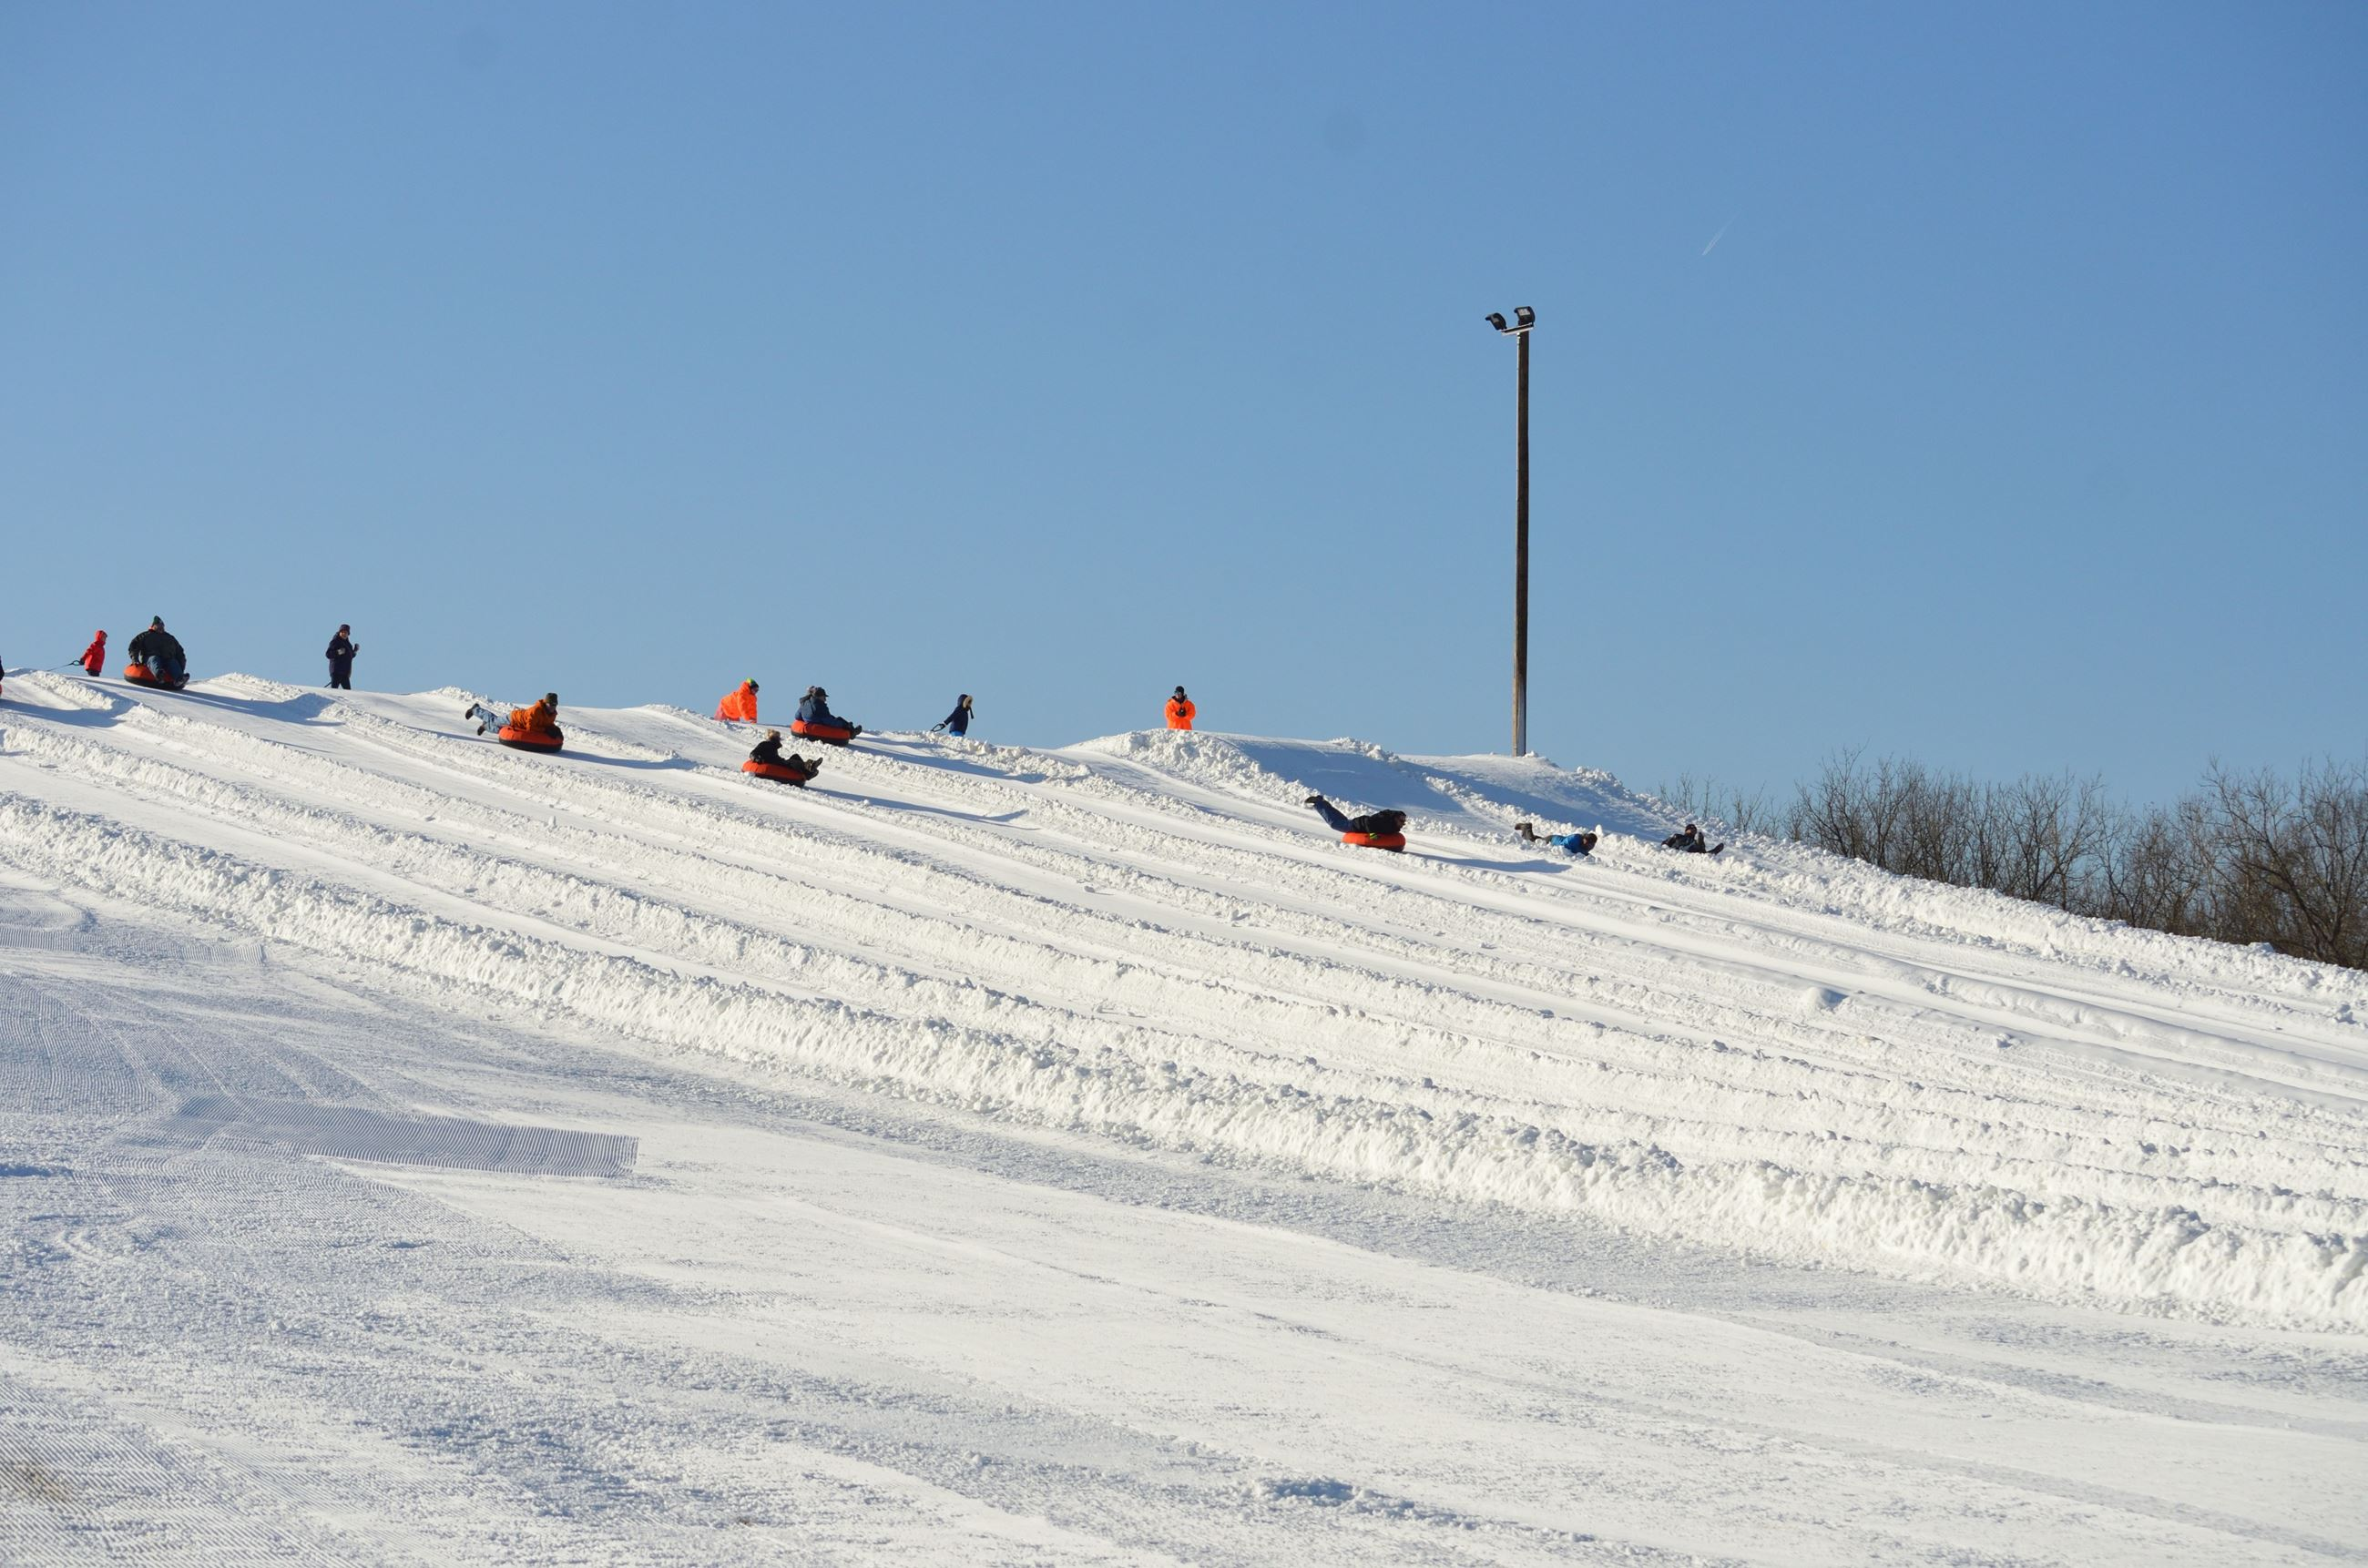 Koteewi Run Snow Tubing Hill Guests Going Down Slope